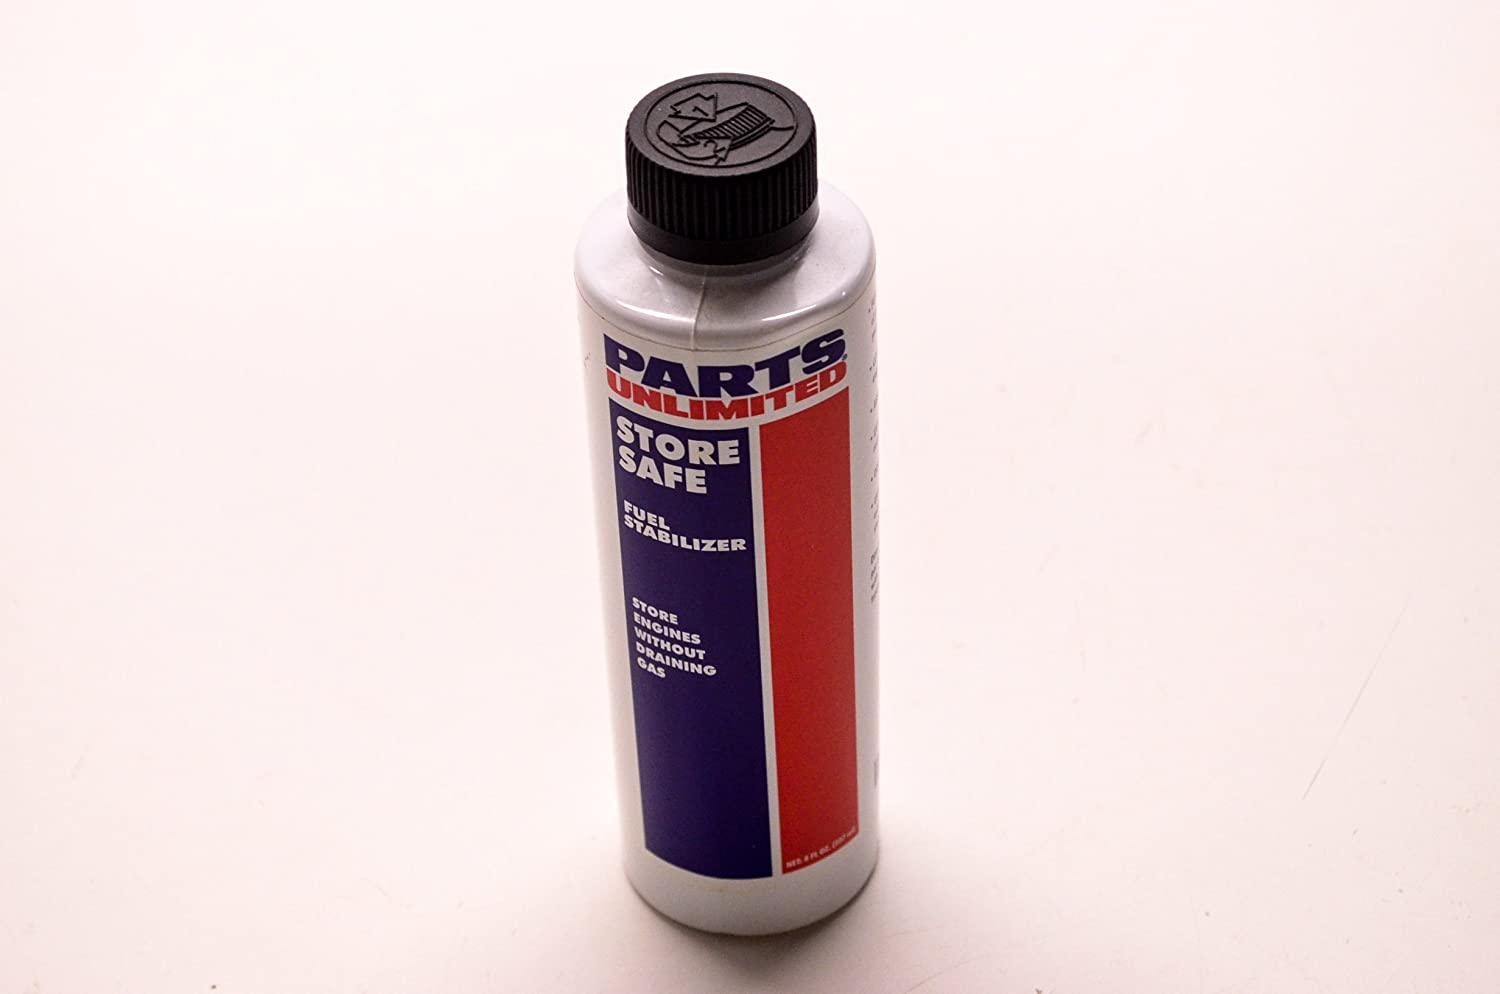 Parts Ranking TOP17 Unlimited Store-Safe Rapid rise Fuel 3707-0007 Stabilizer